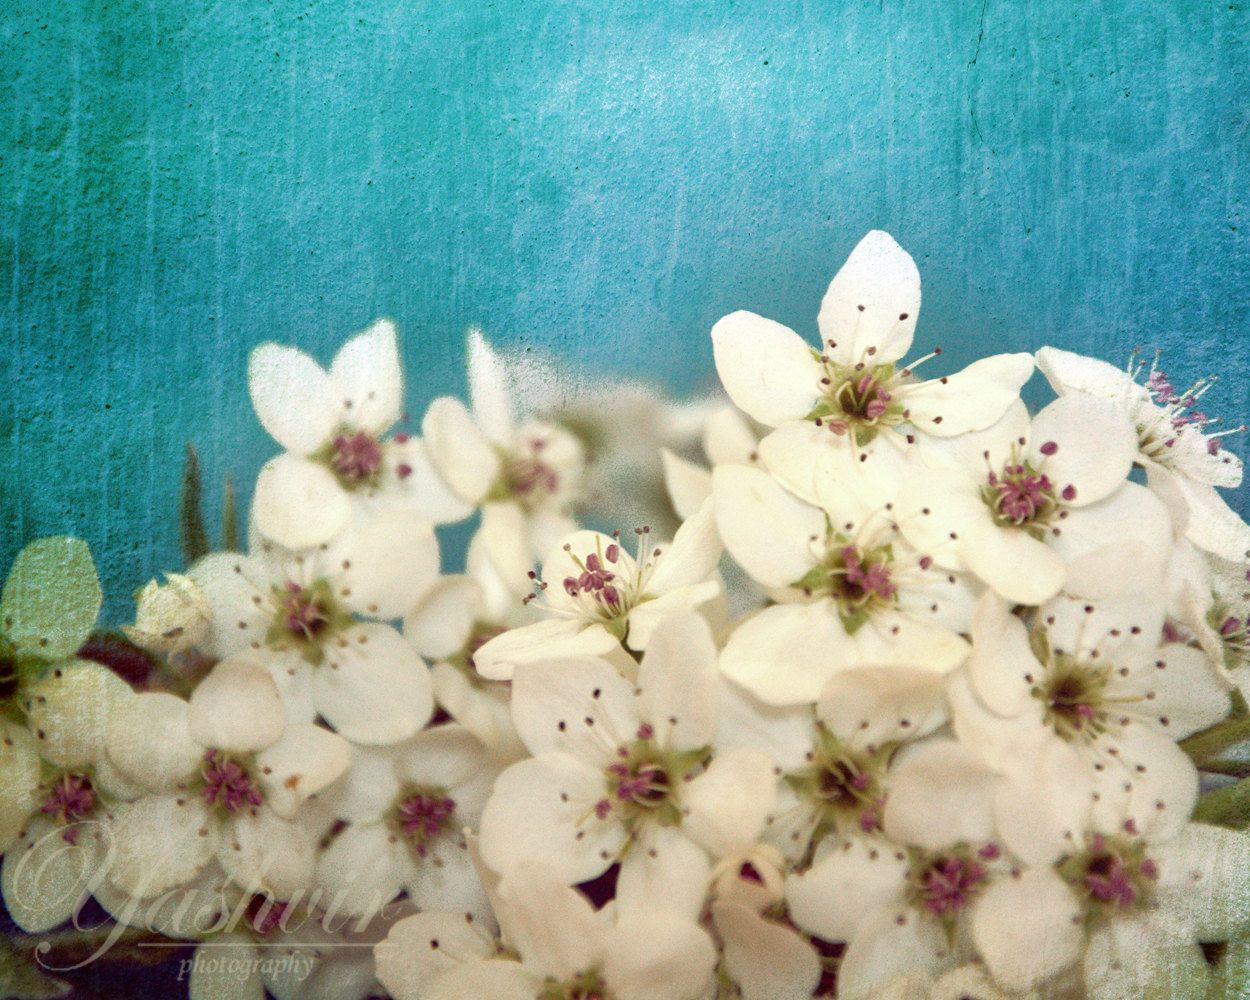 Cherry Blossoms 16 By 20 Inches Photography Print Of Flowers Rustic Blue Teal Background Enchanted And Romantic Spring Home Decor